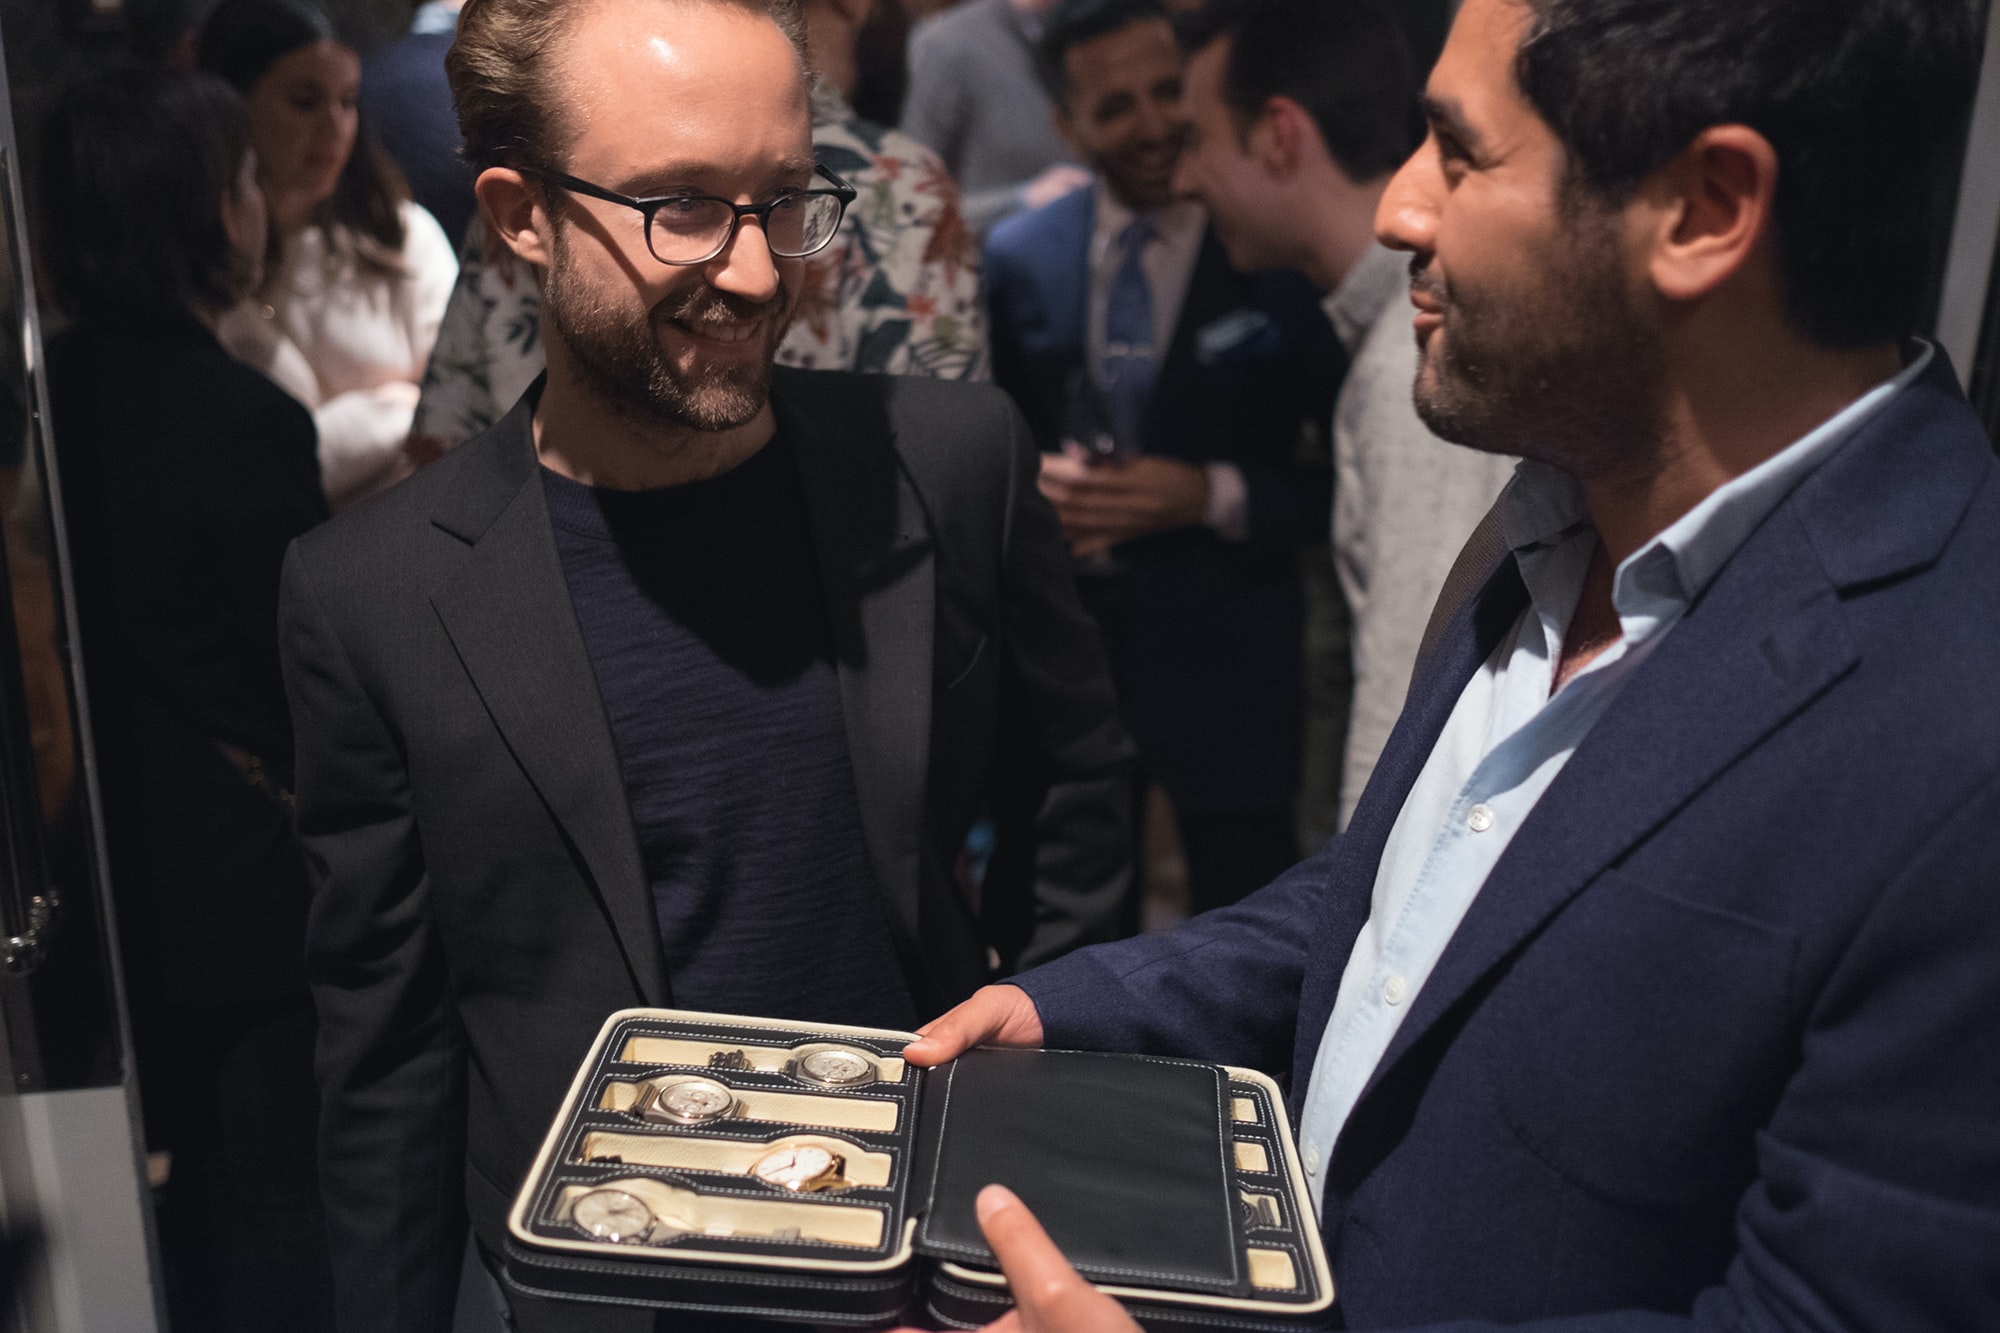 Photo Report: Watch Spotting At The HODINKEE Meet-Up In London (Plus Our Holiday 2016 Pop-Up At Harrods) Photo Report: Watch Spotting At The HODINKEE Meet-Up In London (Plus Our Holiday 2016 Pop-Up At Harrods) Hodinkee event 29 nov 2016 47